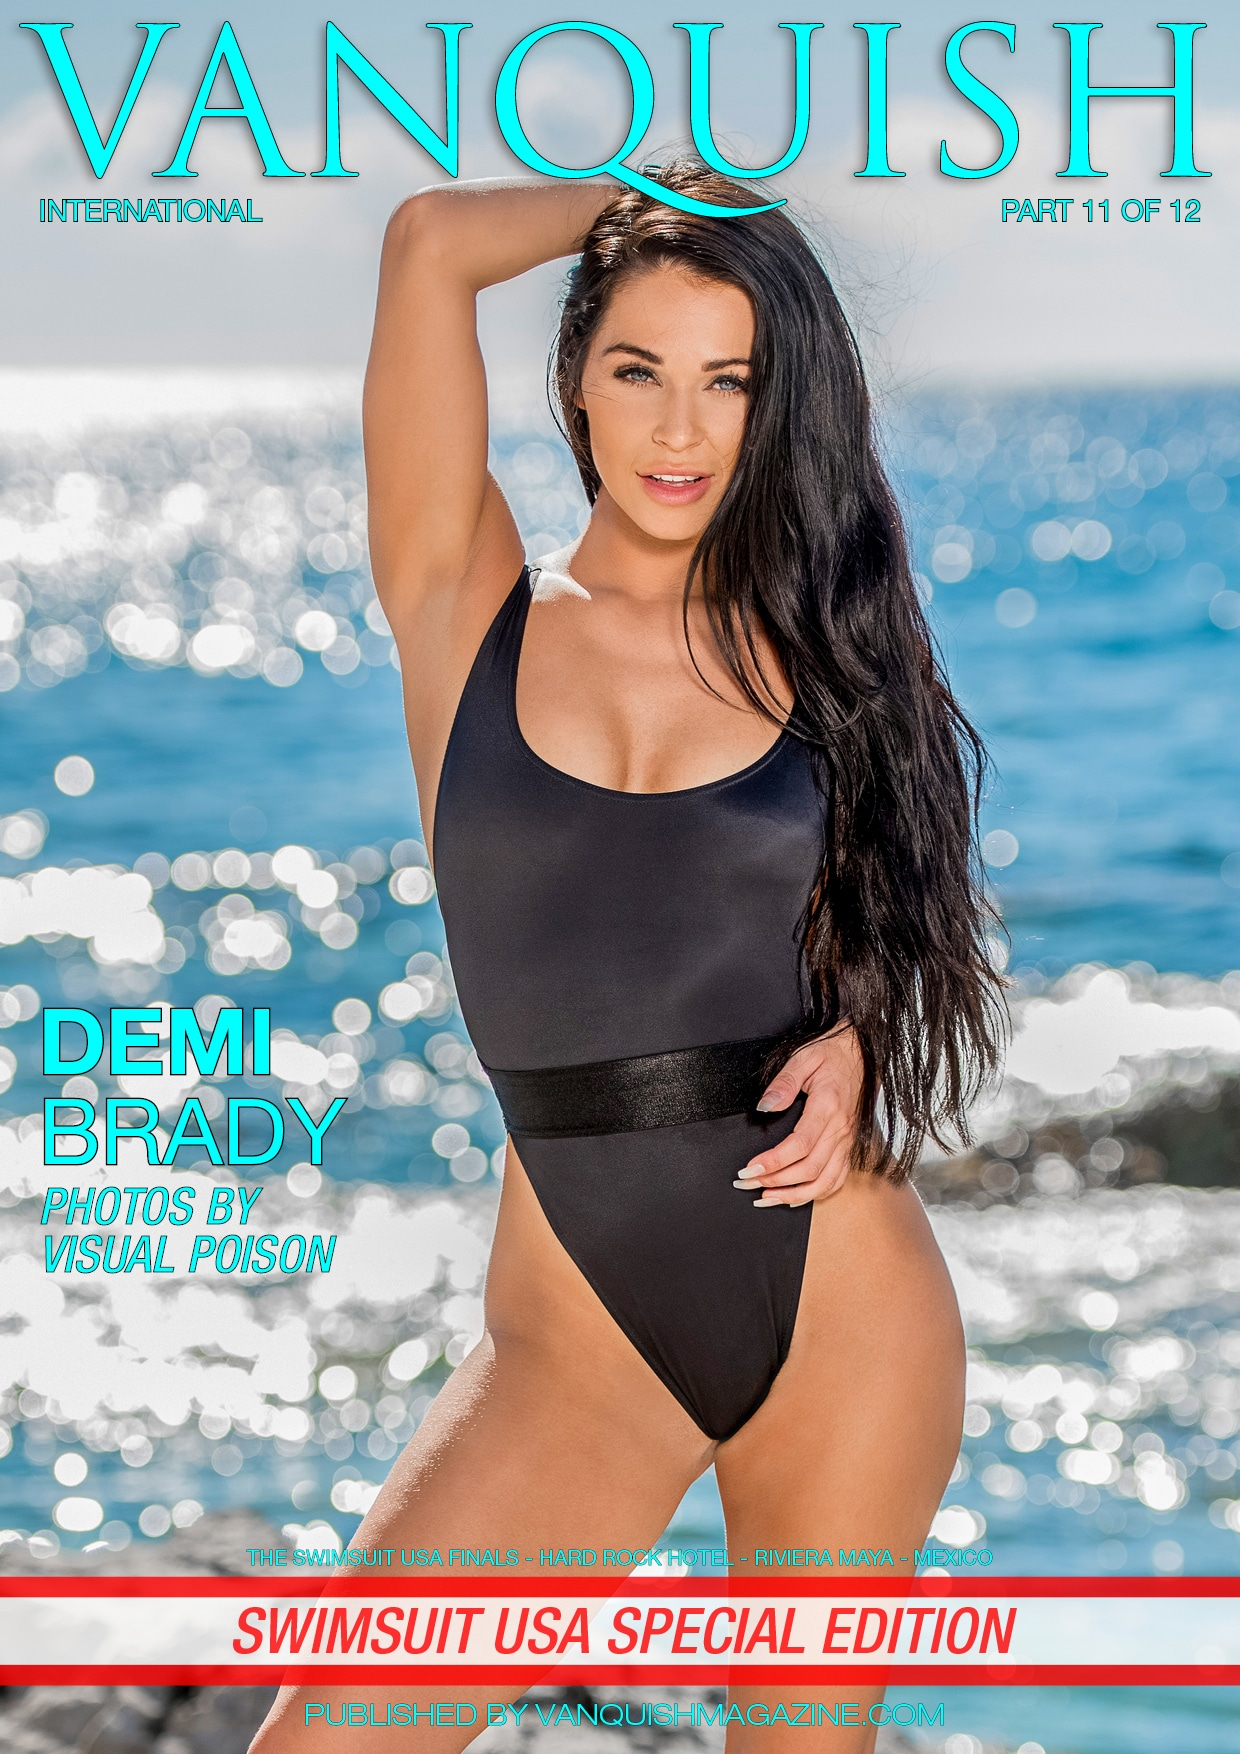 Vanquish Magazine - Swimsuit USA 2018 - Part 11 - Demi Brady 1